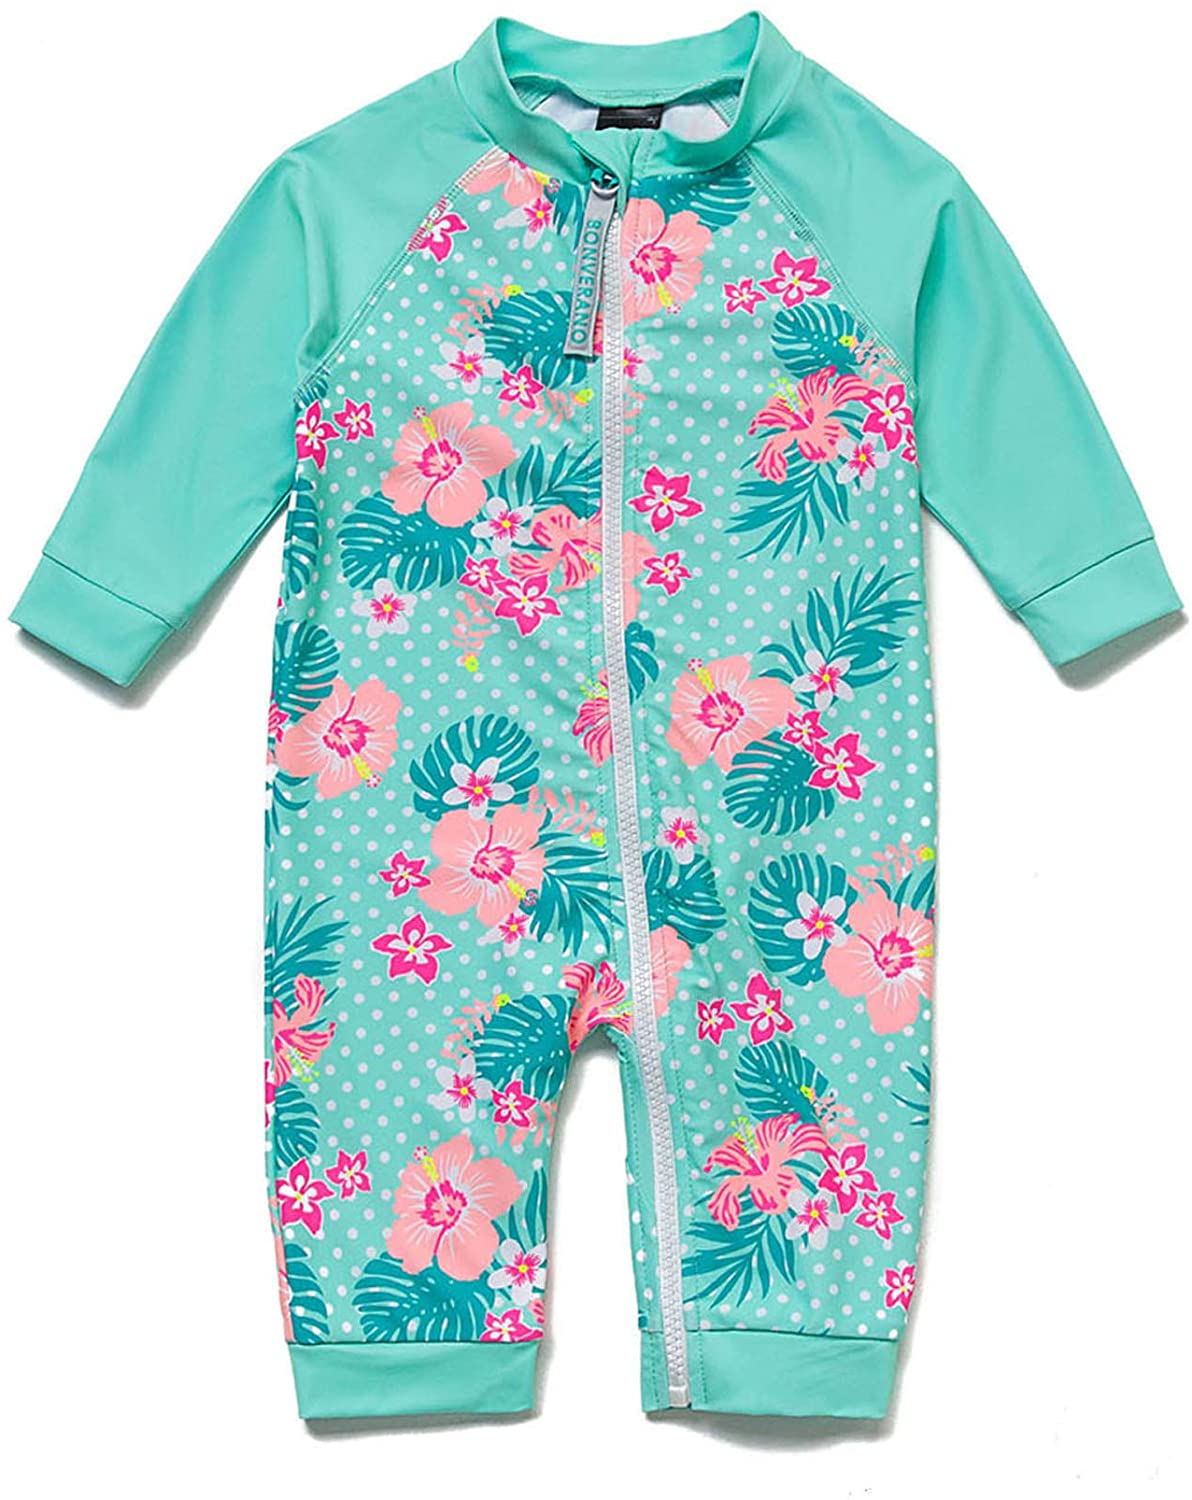 Baby Girl One-Picec Swimsuits Long Sleeve UPF 50+ Come with a Hats